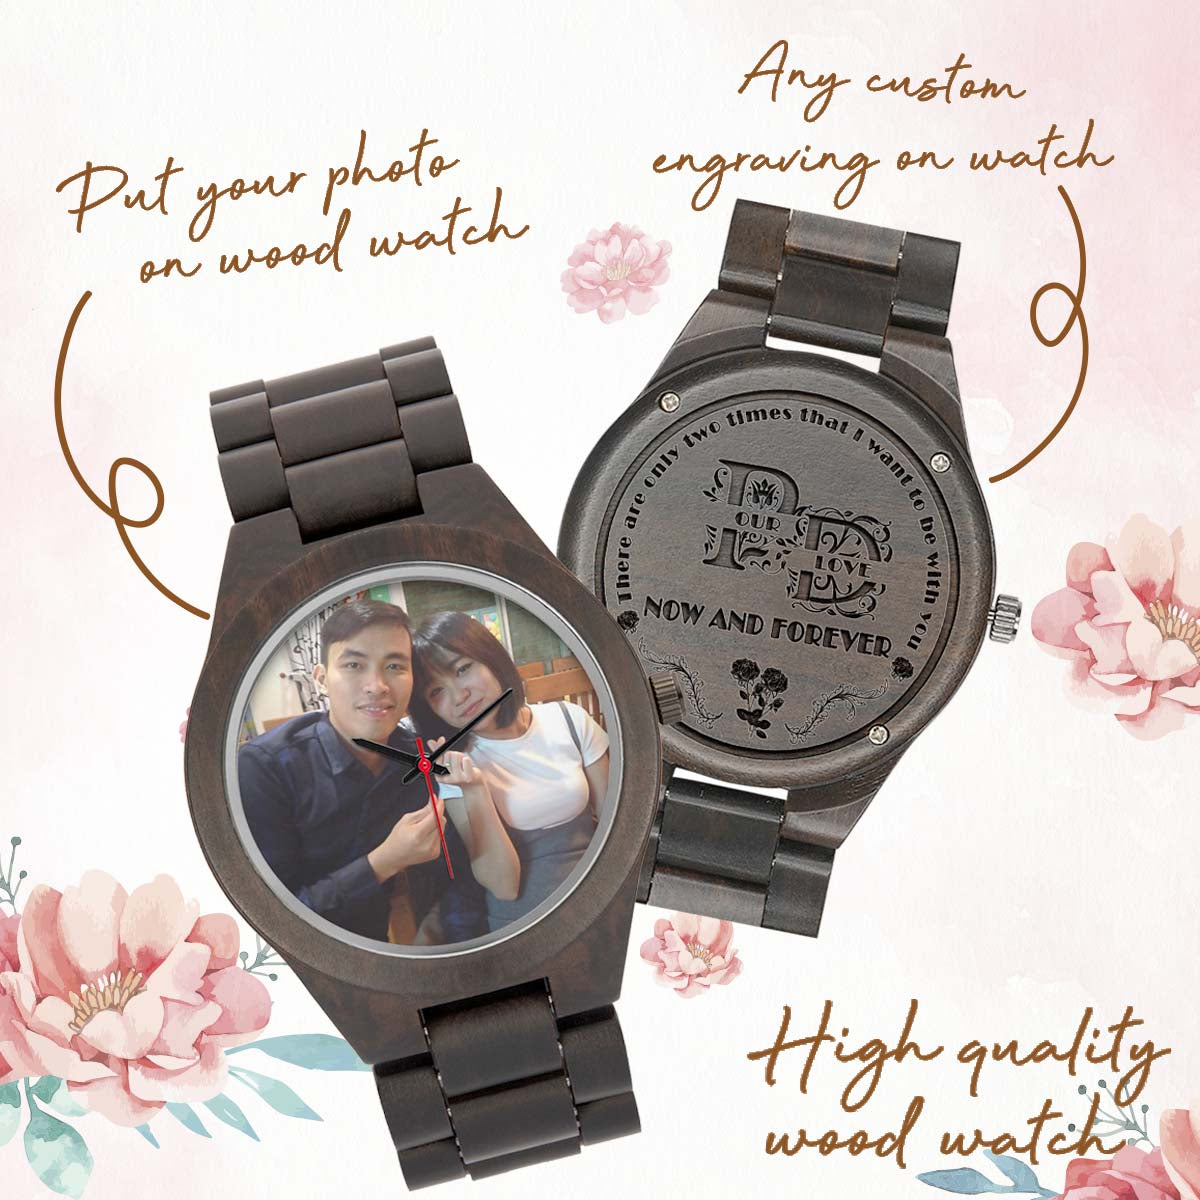 PERSONALIZED WOOD WATCH - UPLOAD YOUR PHOTO & ADD YOUR CUSTOM TEXT